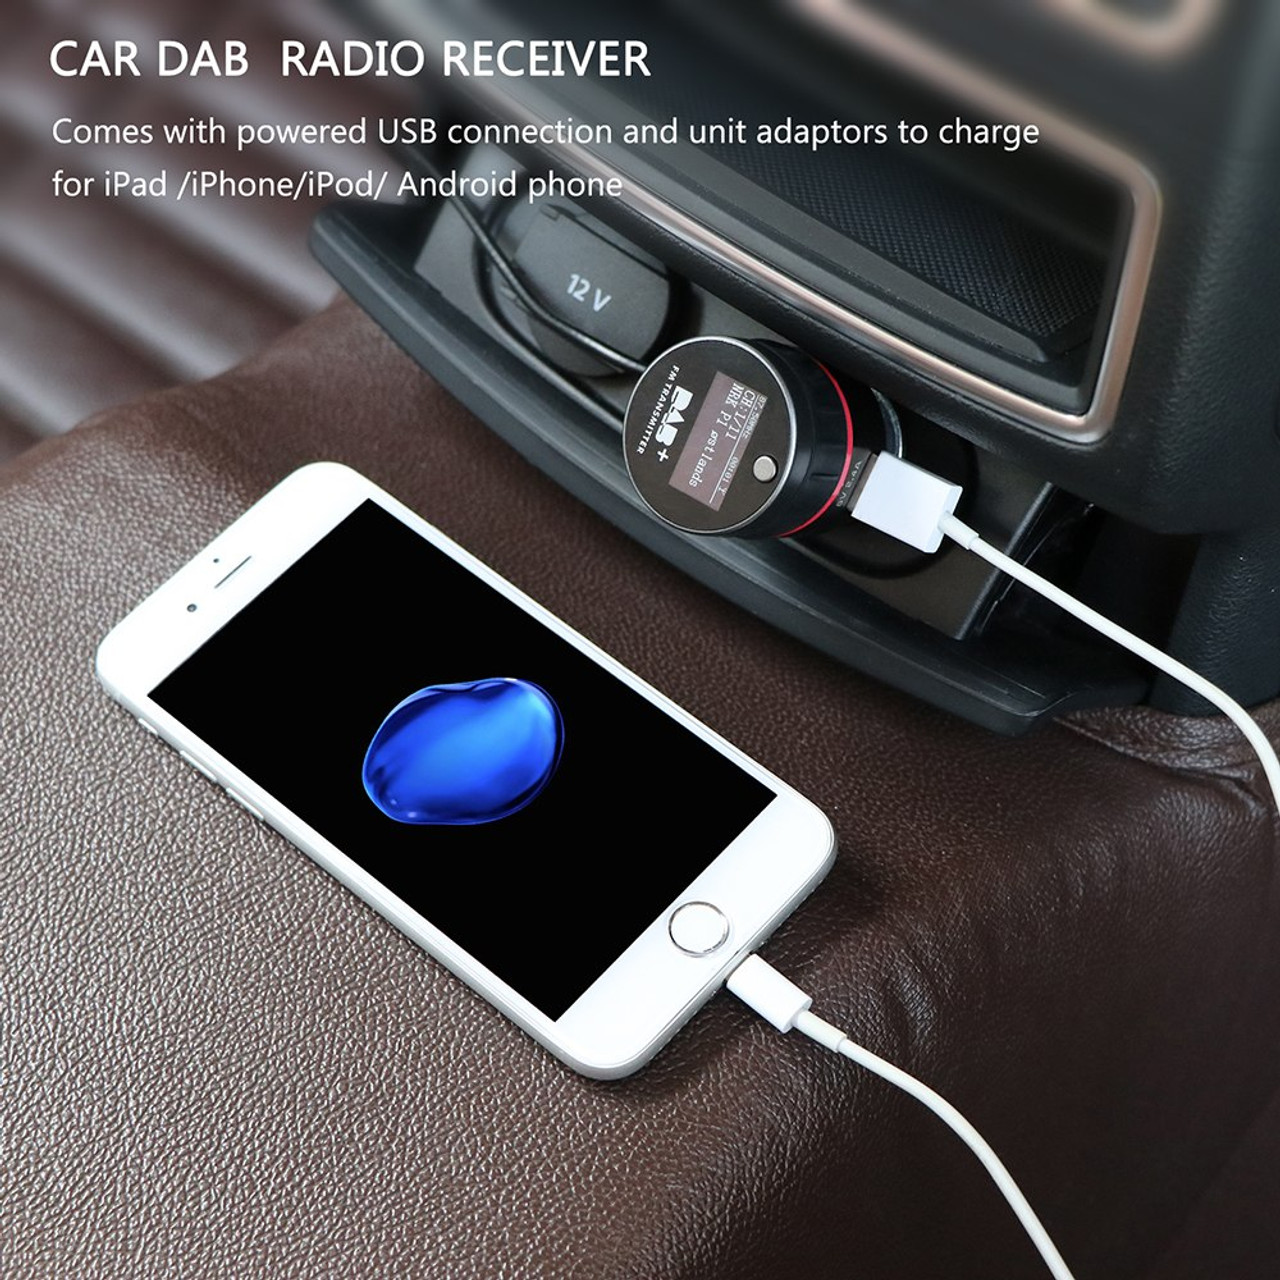 Car DAB Plus Radio Receiver Tuner FM Transmitter Converter Plug-and-Play  Adaptor USB Part for iPad iPhone